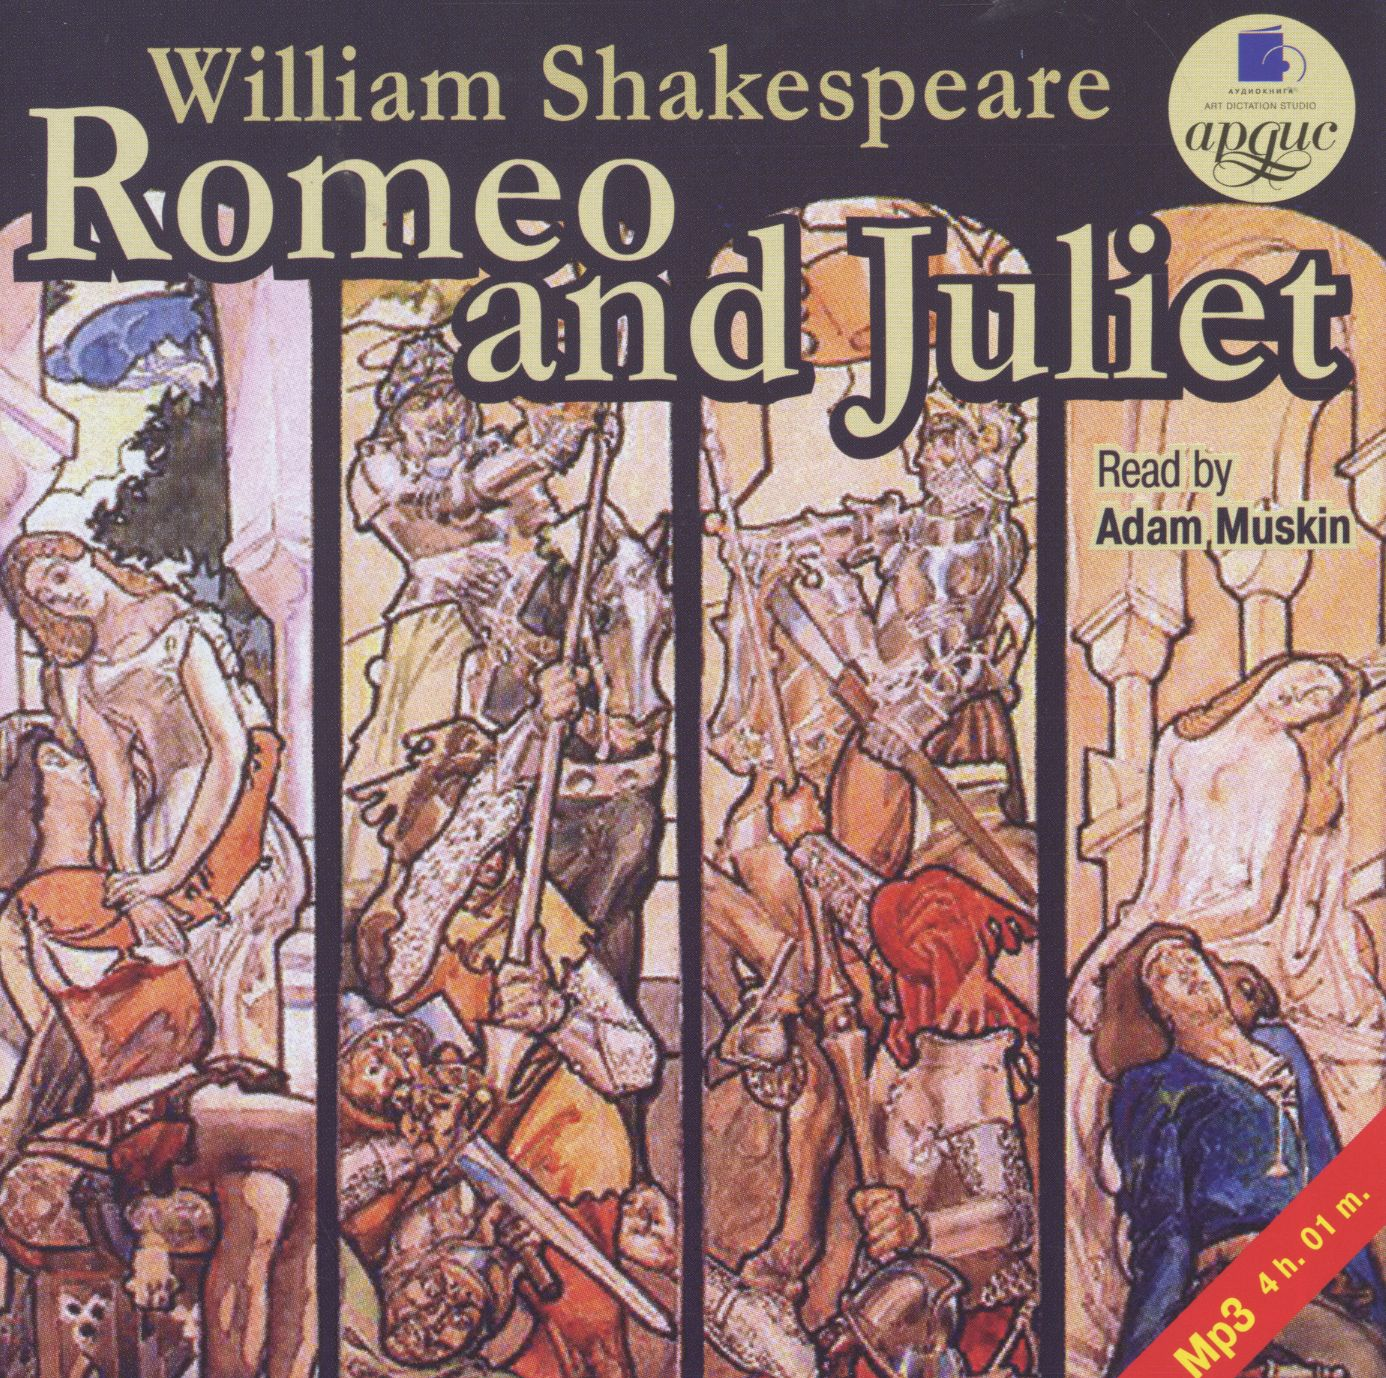 a comparison of a midsummer nights dream and romeo and juliet in their themes of love